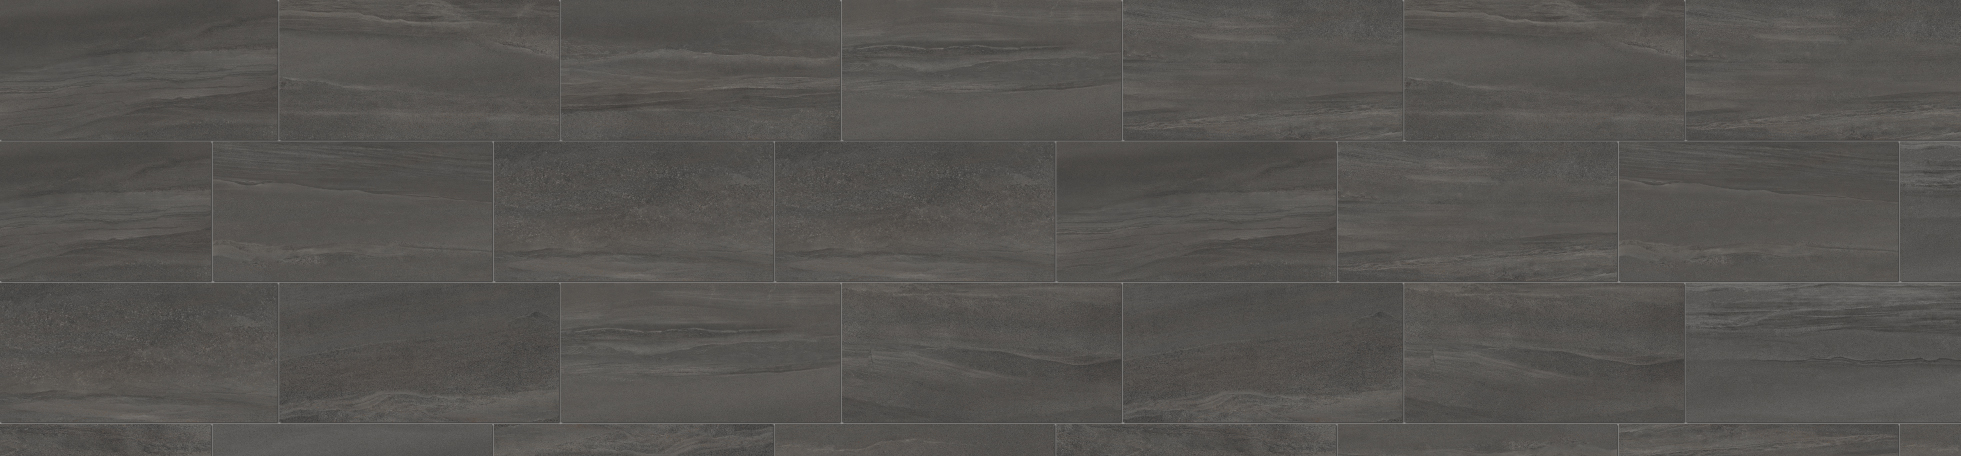 Celstone smoke osborne ceramic tile centre ceramic tiles perth celstone smoke dailygadgetfo Image collections